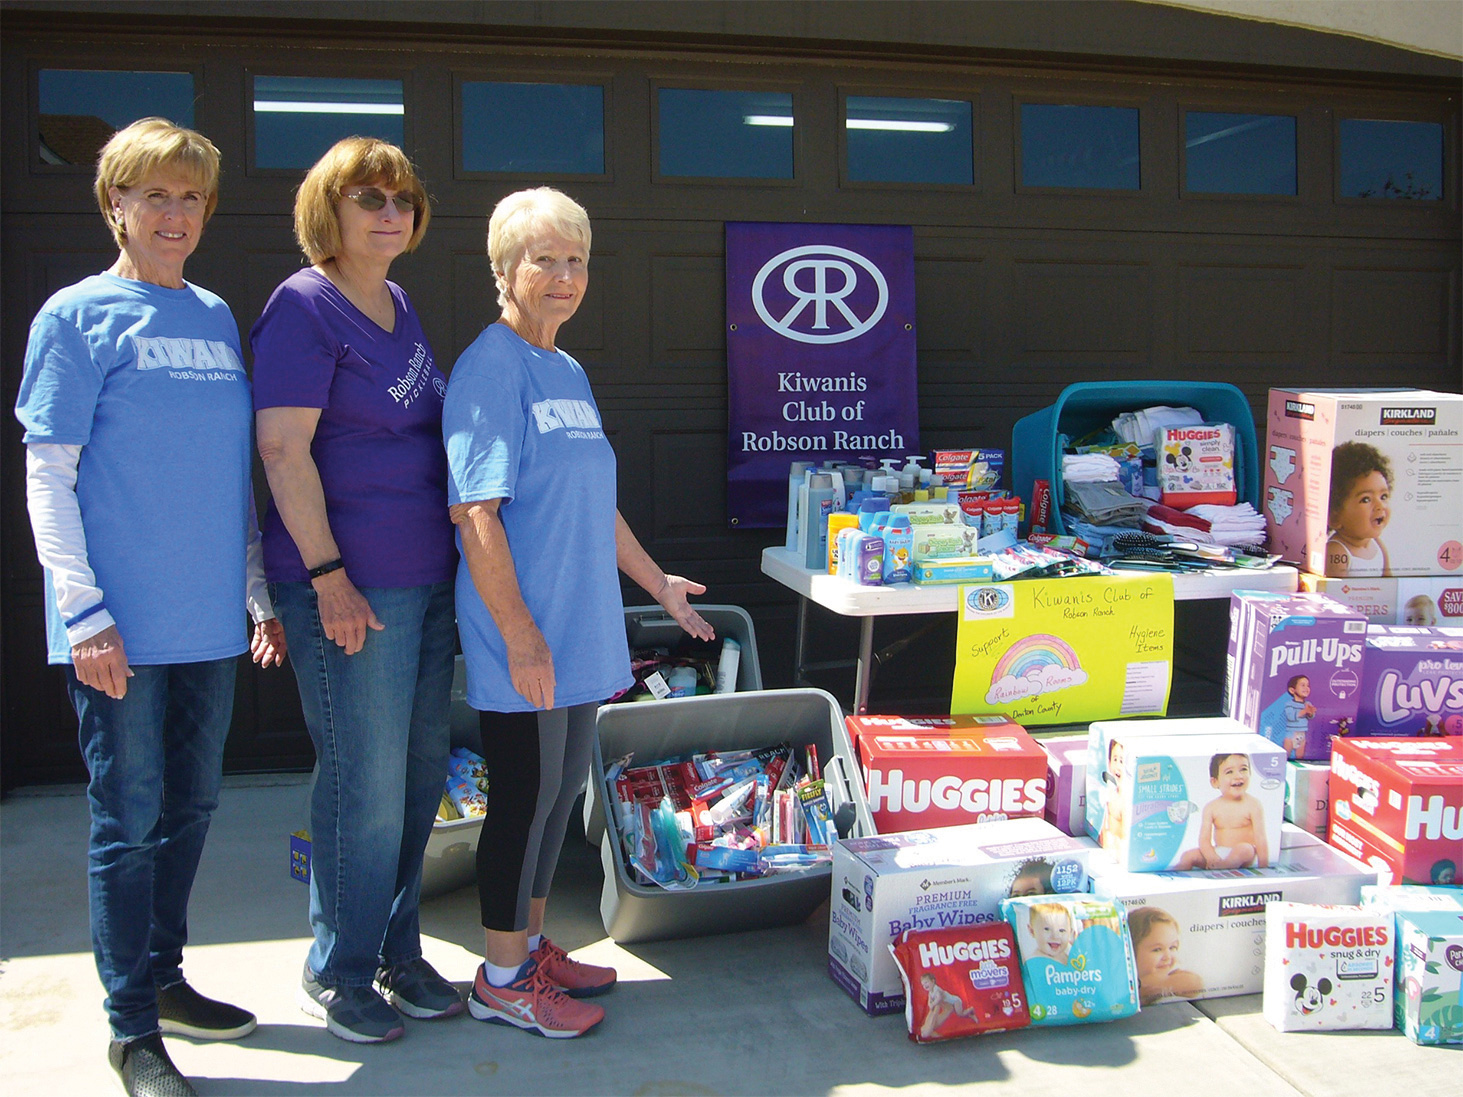 Marilyn Winter, Secretary of the RR Pickleball Club, along with Pat Hamblin and Chris Mershon, co-chairs of the Kiwanis Club Rainbow Rooms fundraiser and pickleball members show off the donations made by the pickleball members at their March 13 Shootout.